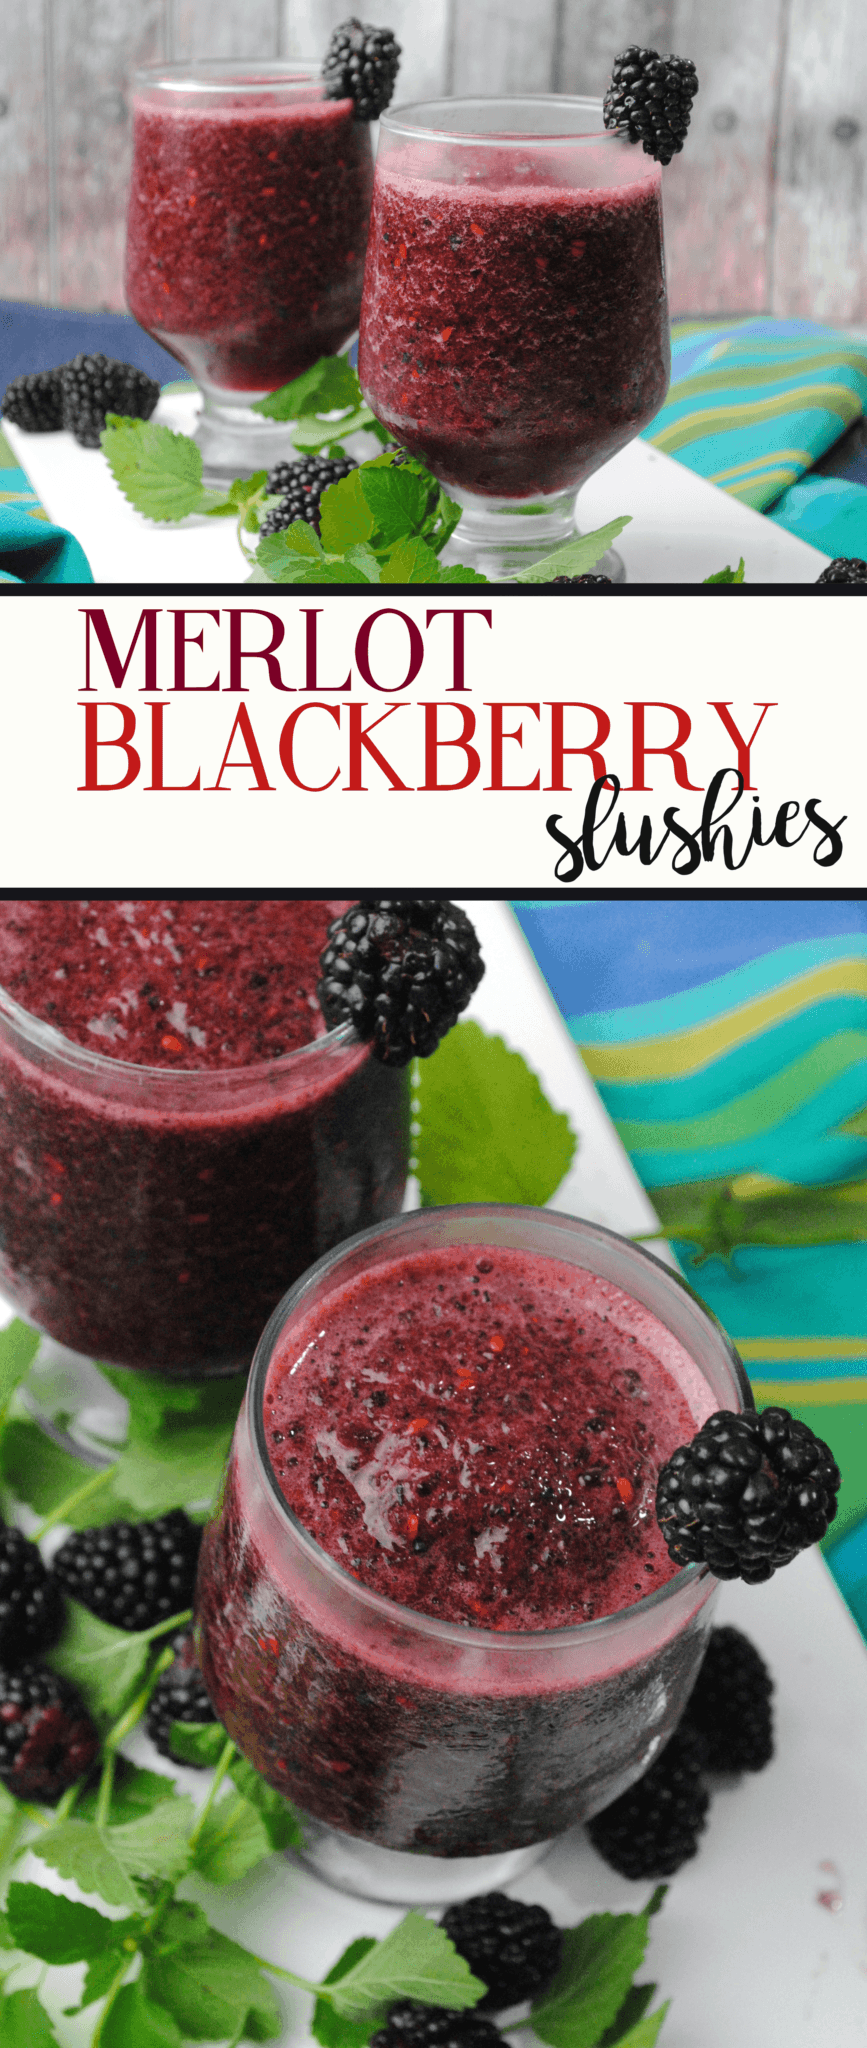 Merlot Blackberry Slushies Summer Cocktail